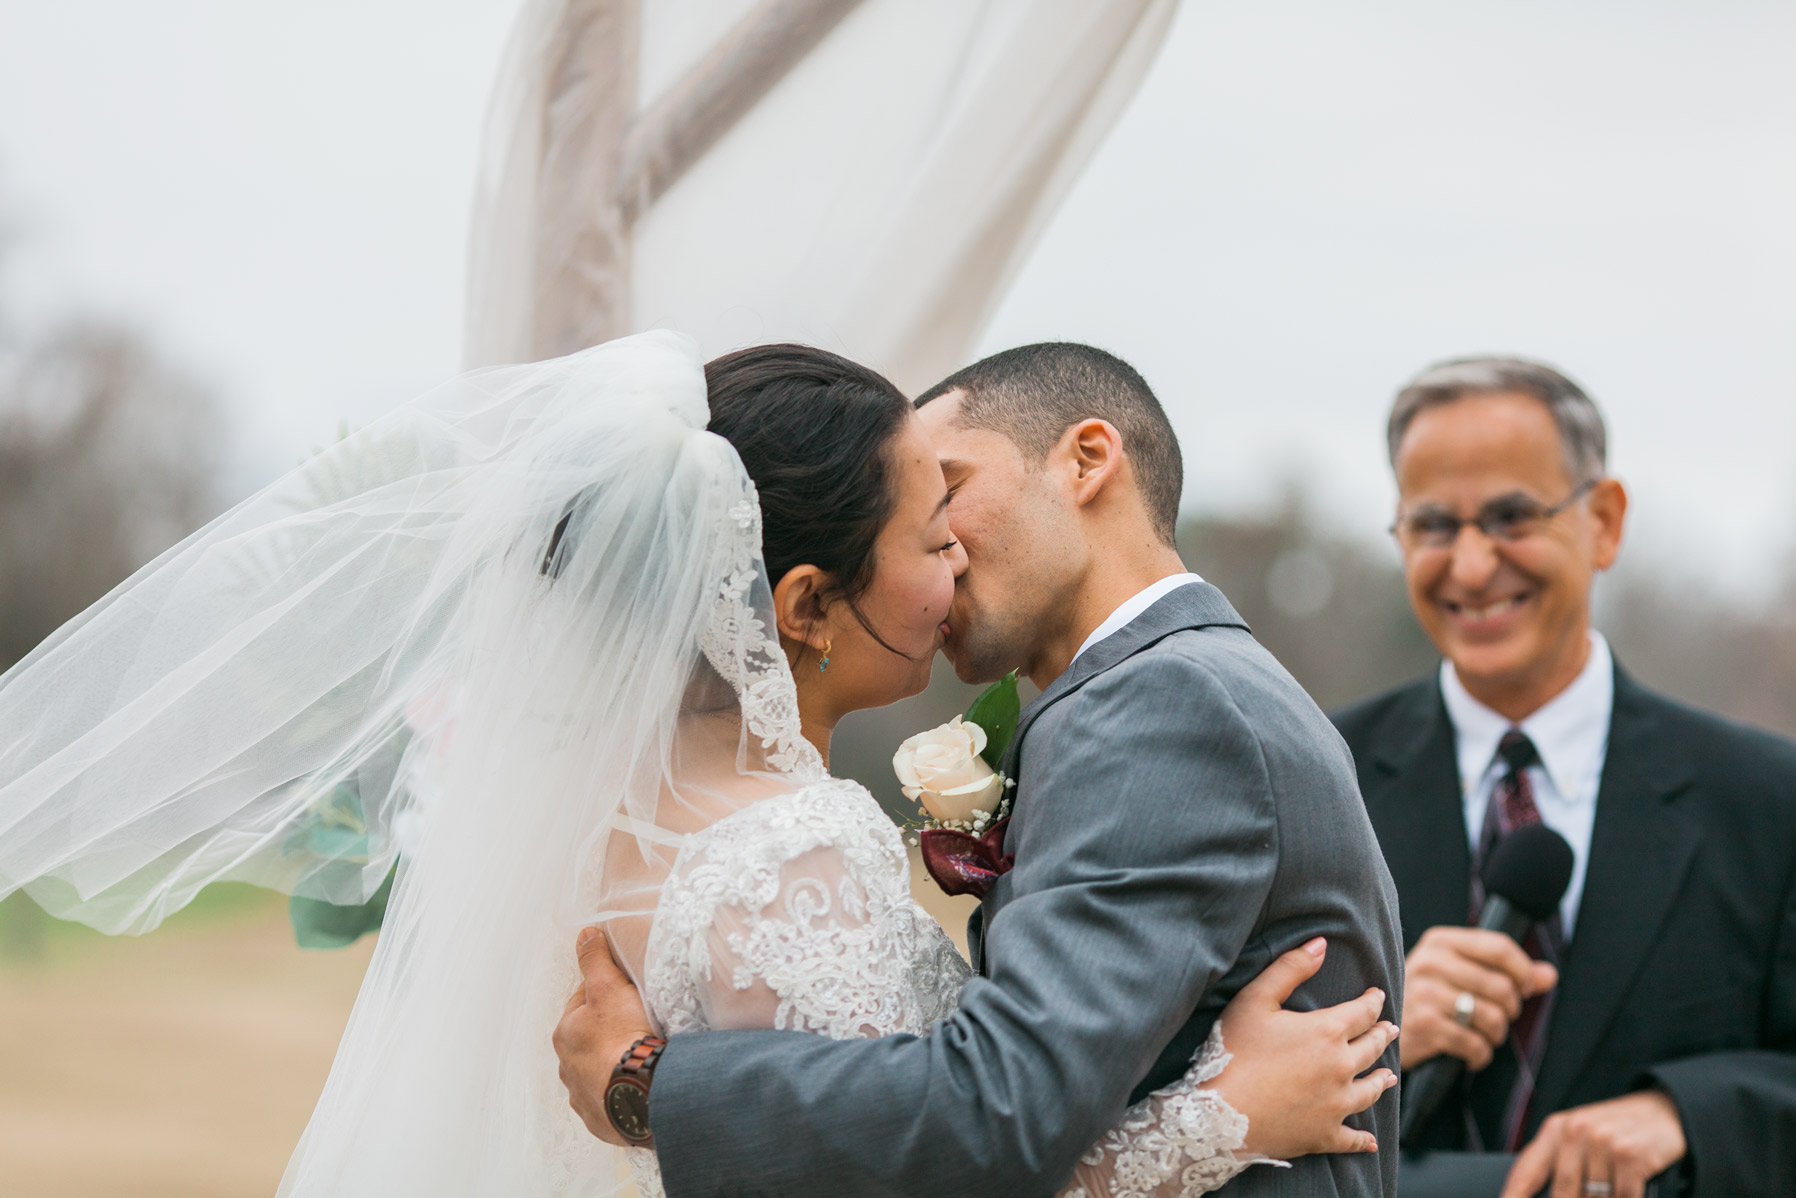 ©2018_BlueSleevePhotography_ Summer+Brian_Wedding-020318_00120.jpg